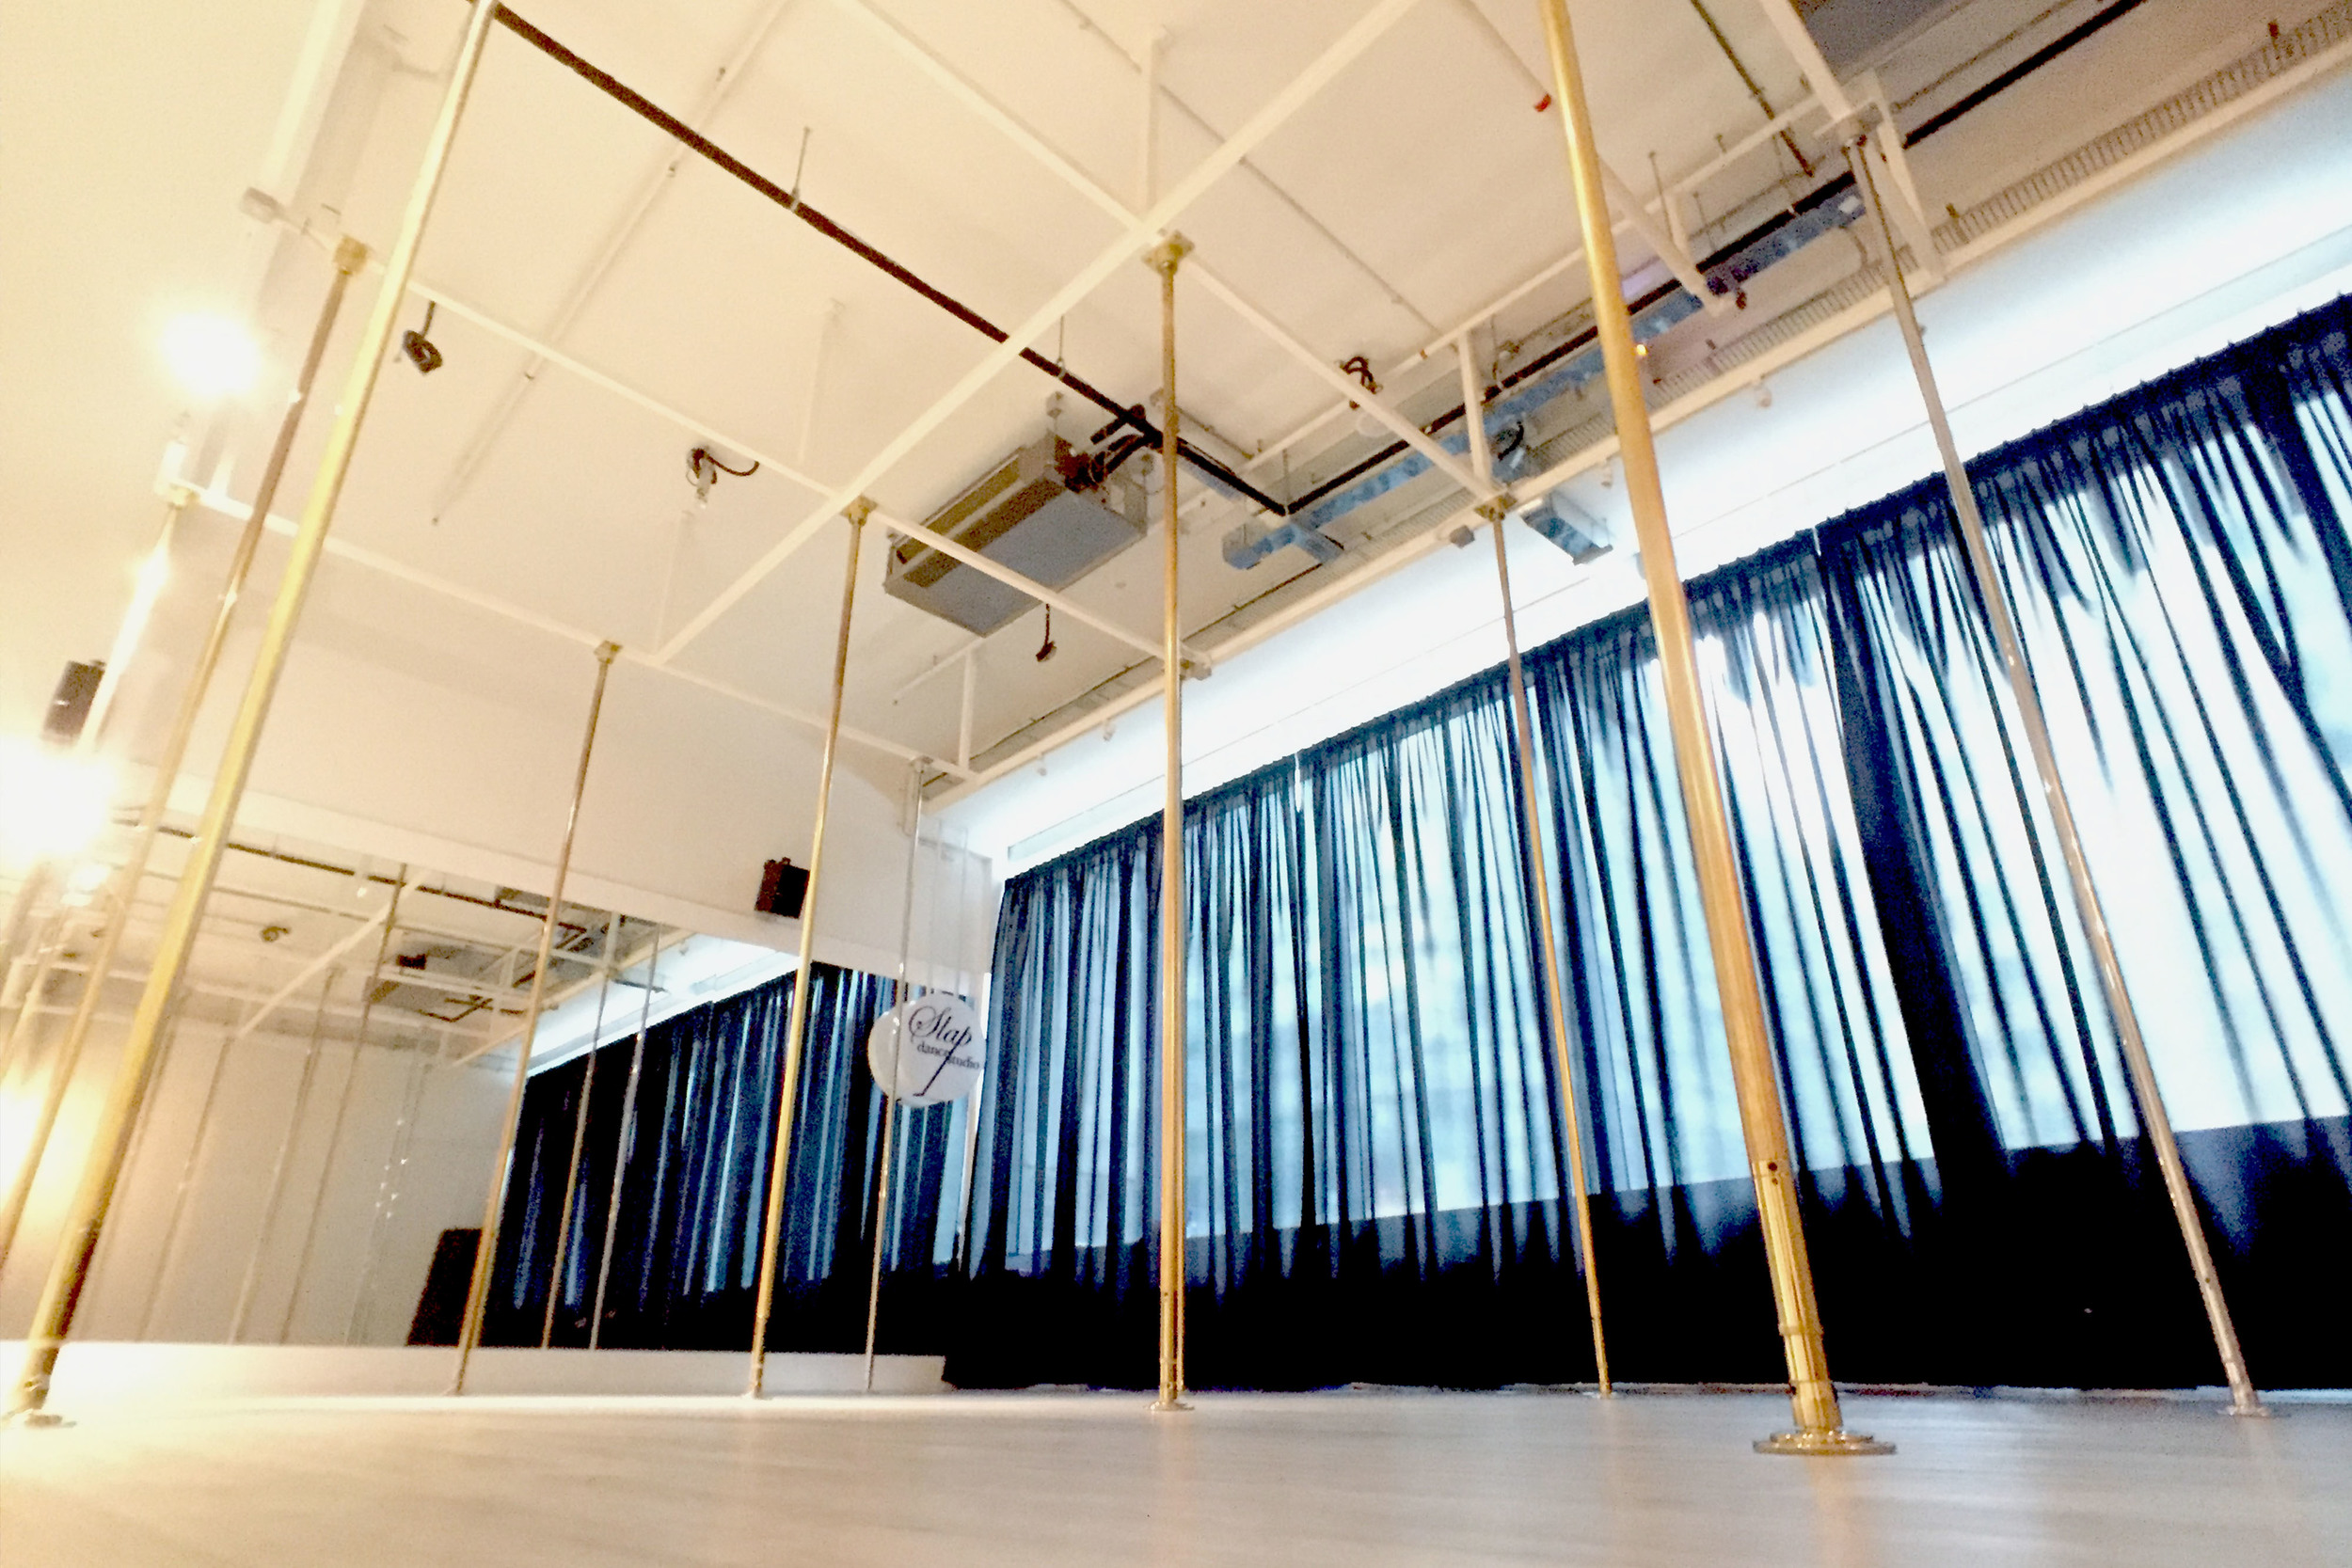 SLAP runs 3 dance studios at Robinson Square. We bring pole aficionado the highest poles in Singapore with a 4.6m ceiling height, comfortable distance between poles in a spacious 1200 square feet dance floor.